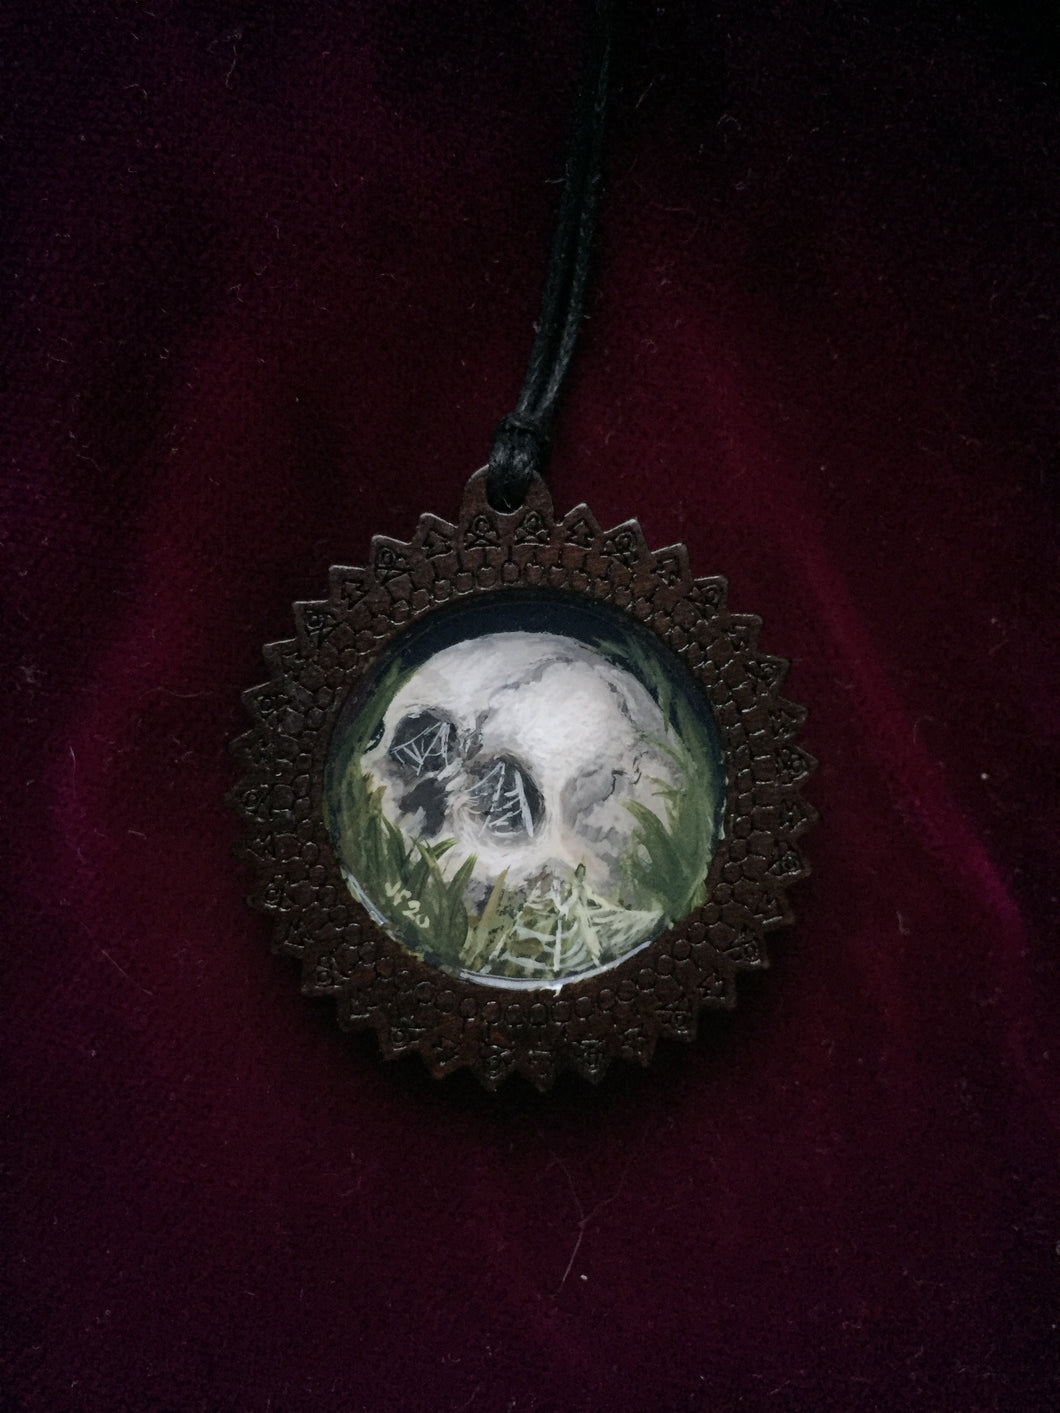 Wooden Death Garden Pendant - Skull with Cobwebs